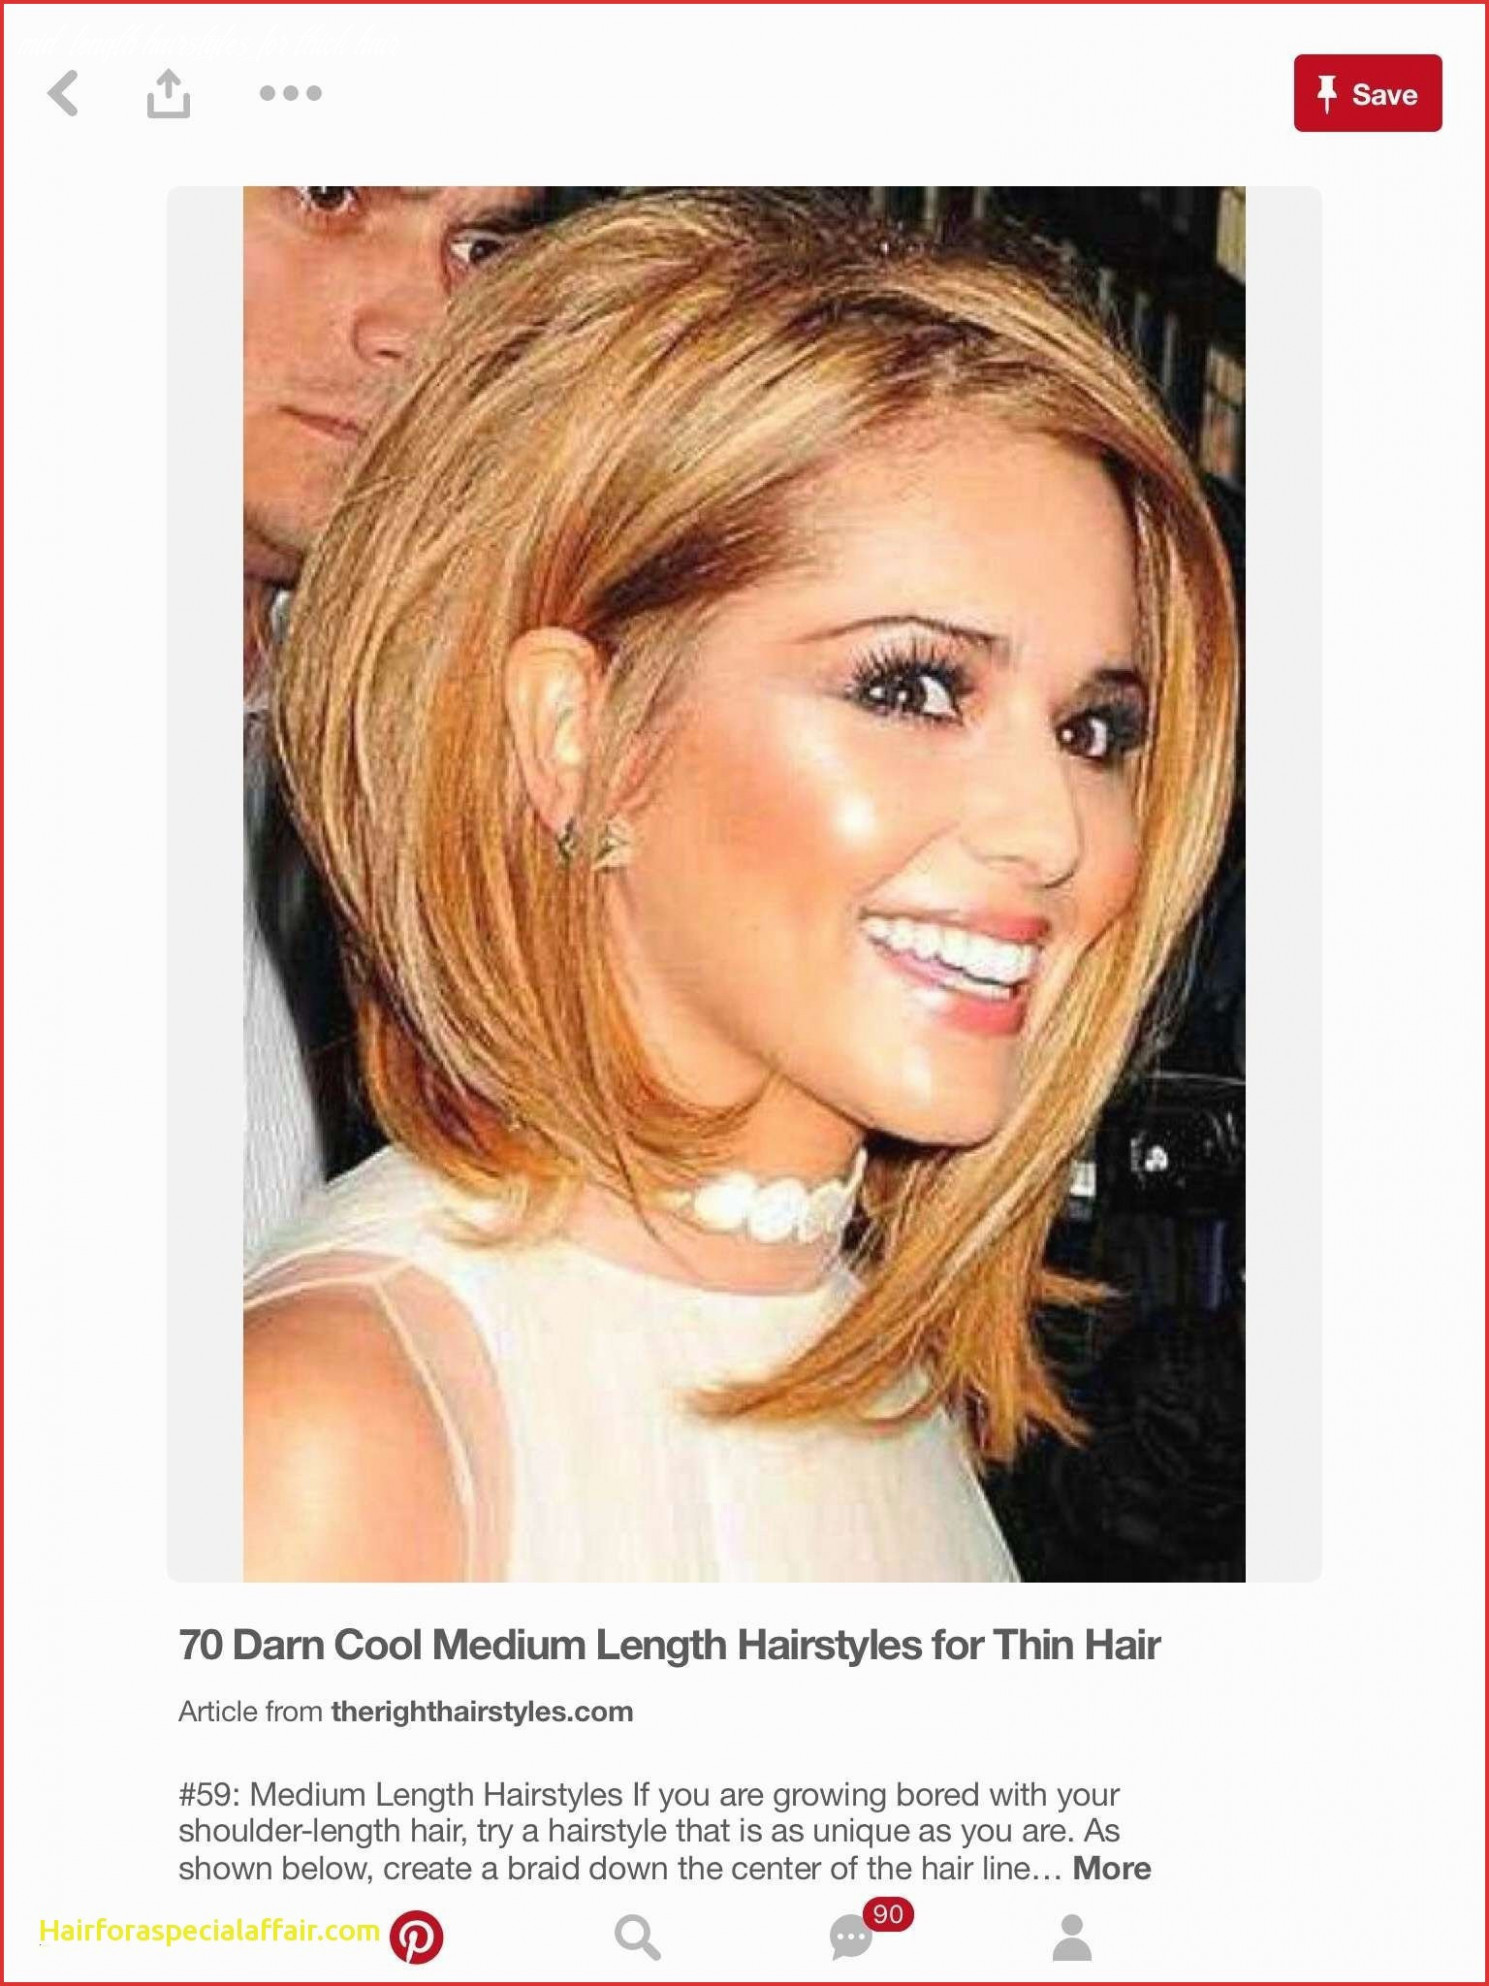 10 Lovely Medium Length Hairstyles for Thick Hair